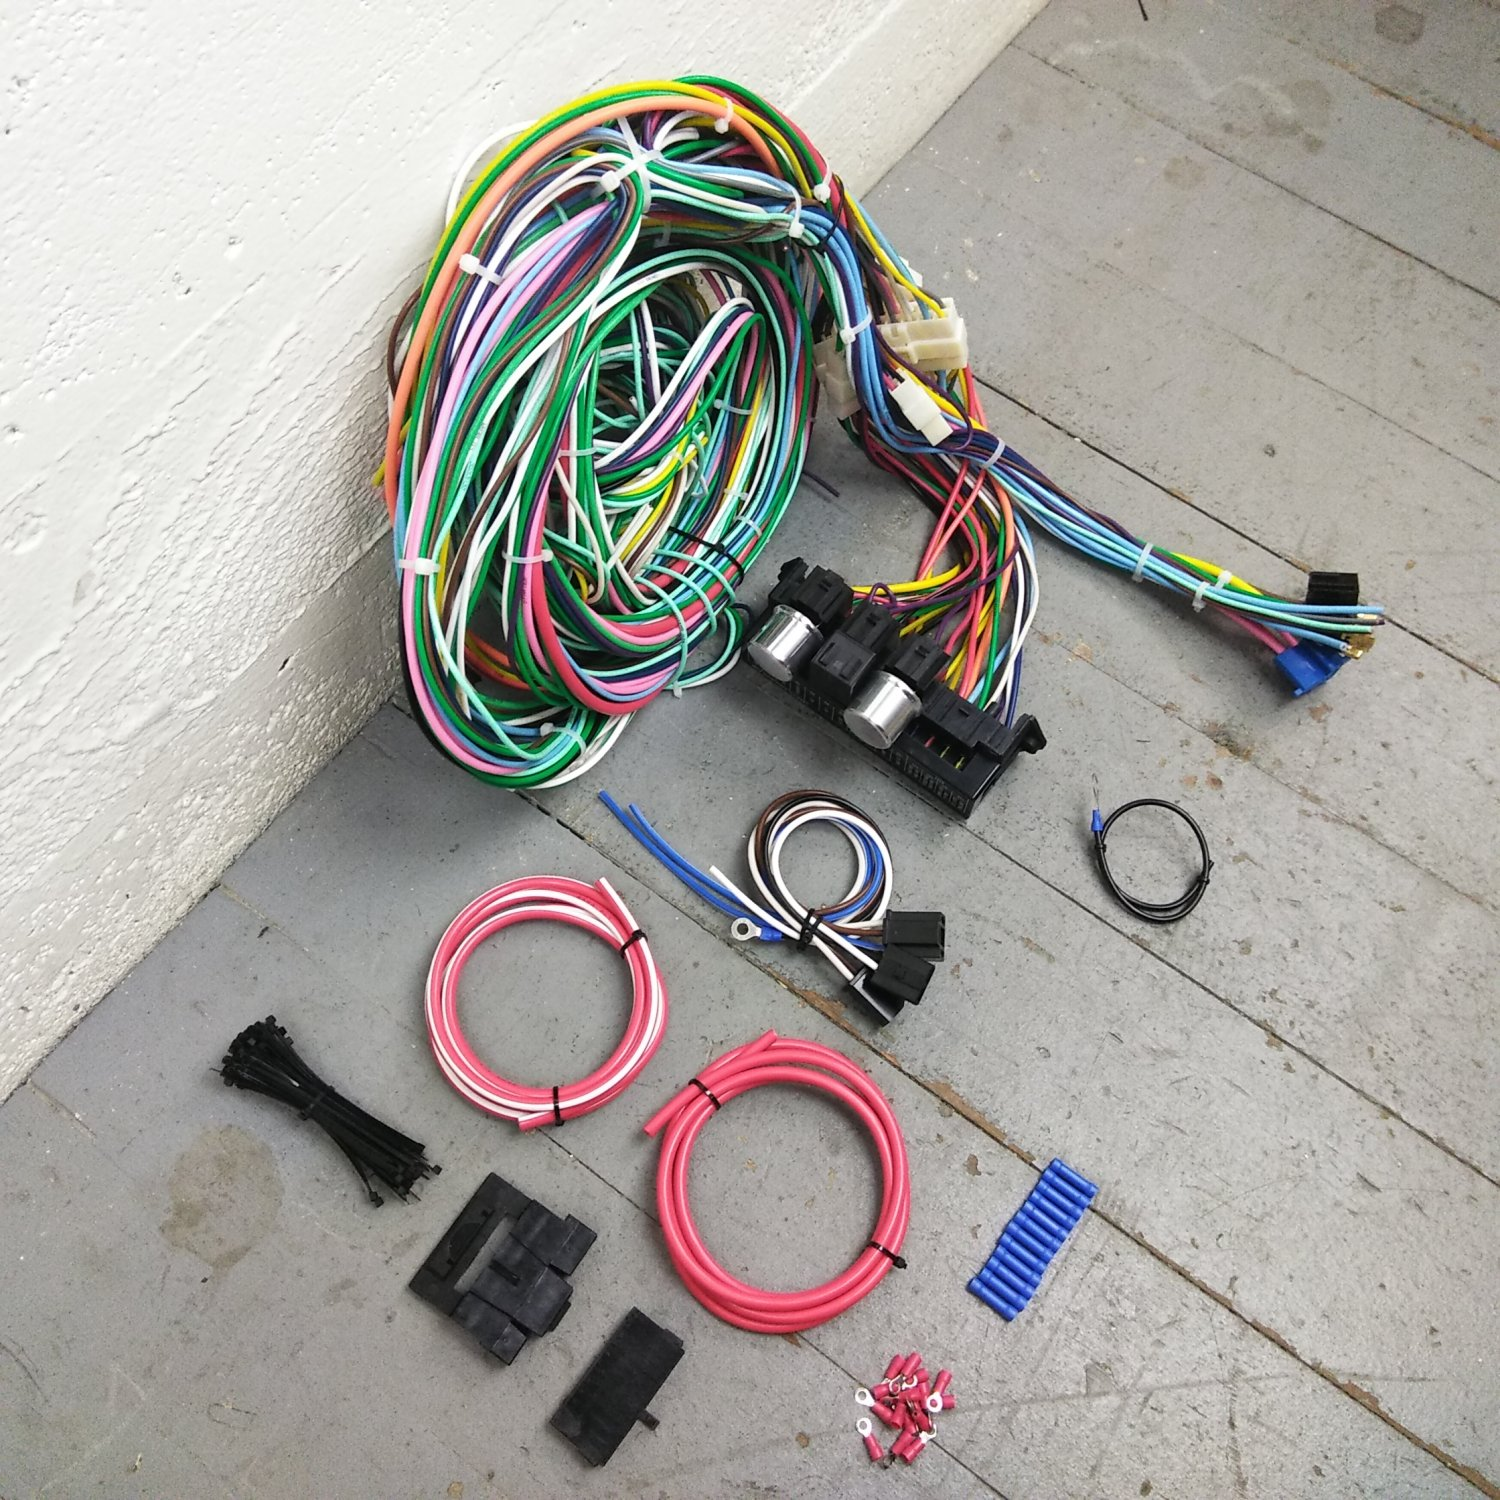 1964 - 1965 Ford Thunderbird Wire Harness Upgrade Kit fits painless new  circuit. Bar_Product_Description_C